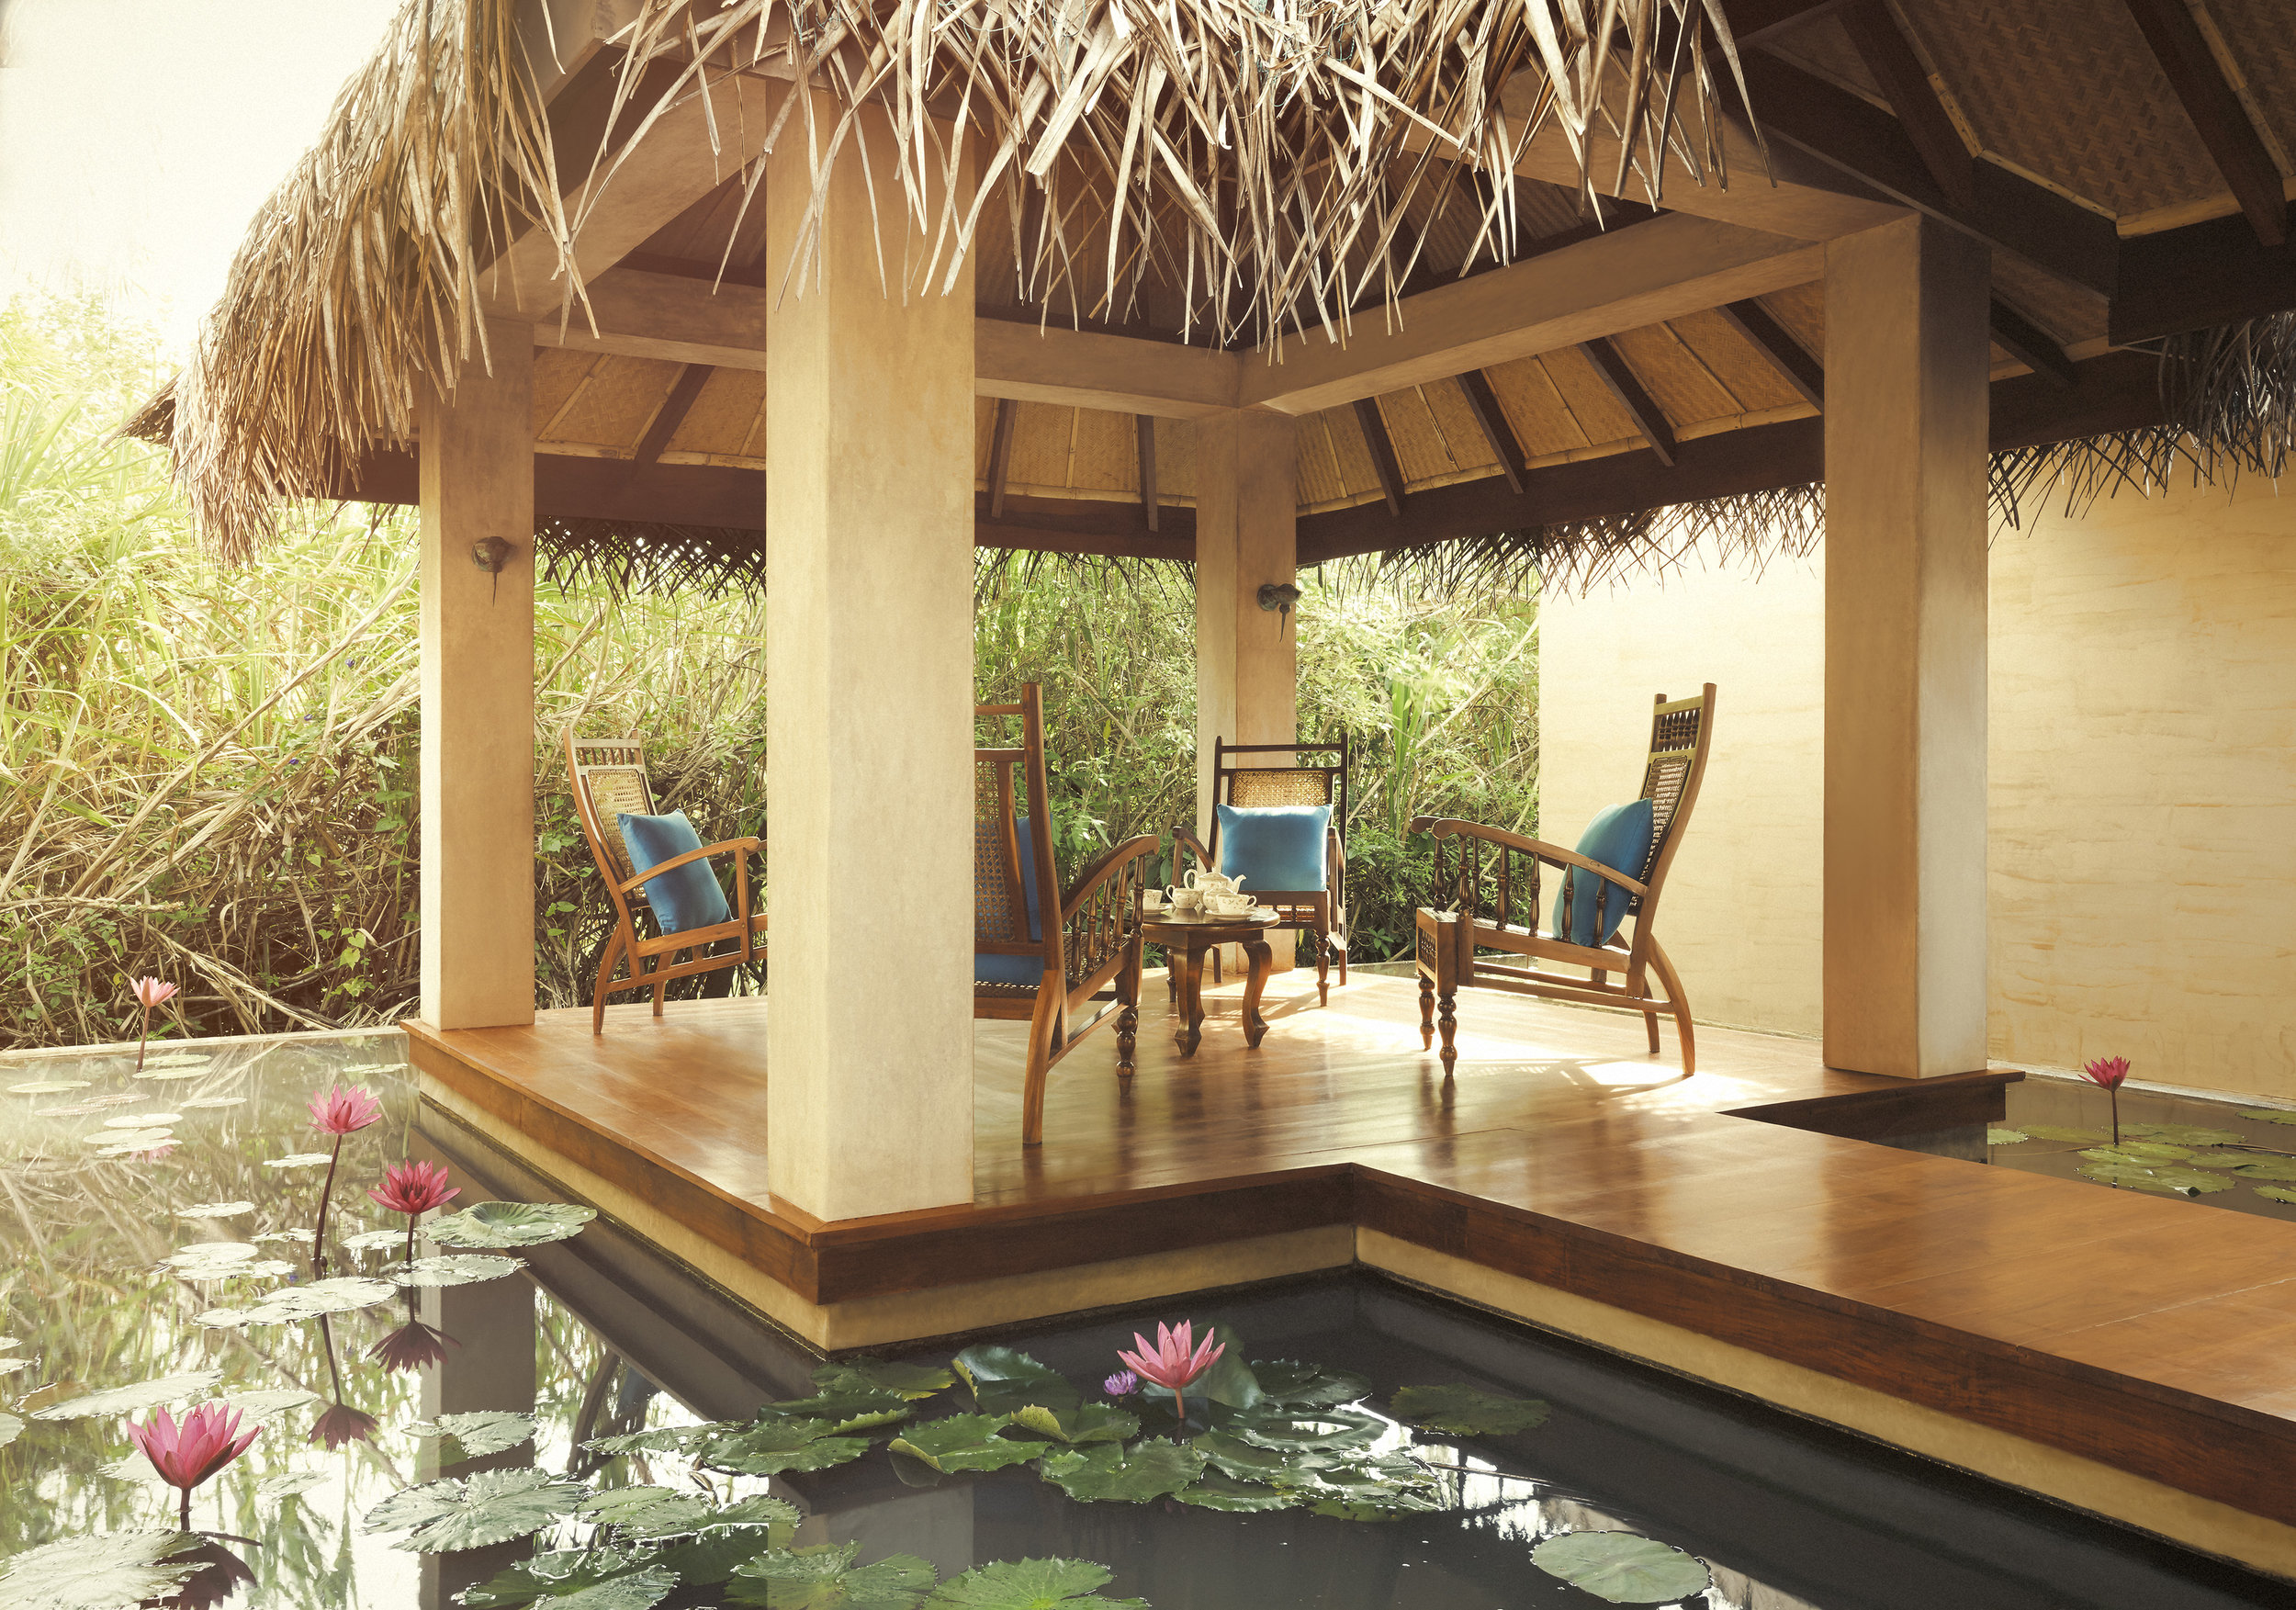 invite-to-paradise-sri-lanka-specialists-experts-travel-agent-tour-operator-jetwing-viluyana-hotel-cultural-triangle-spa-relax-2.jpg